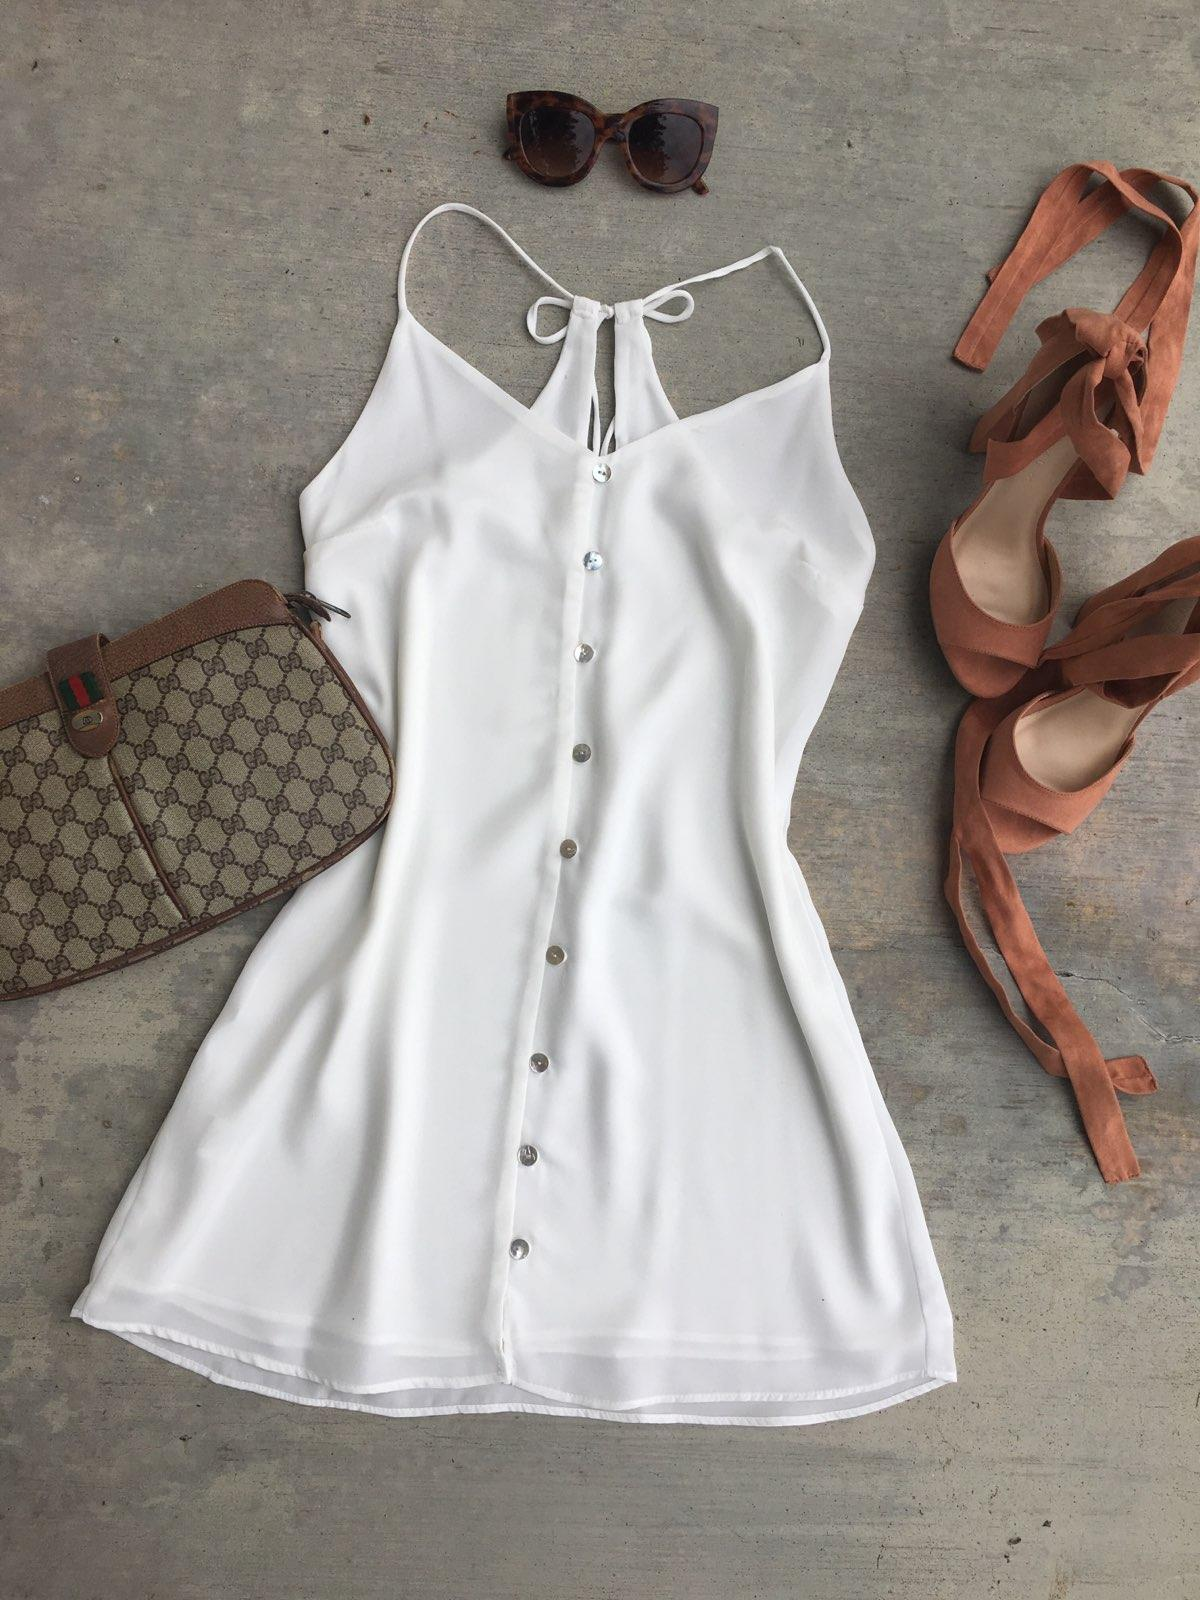 DOUBLE DATE DRESS - NEW NEW